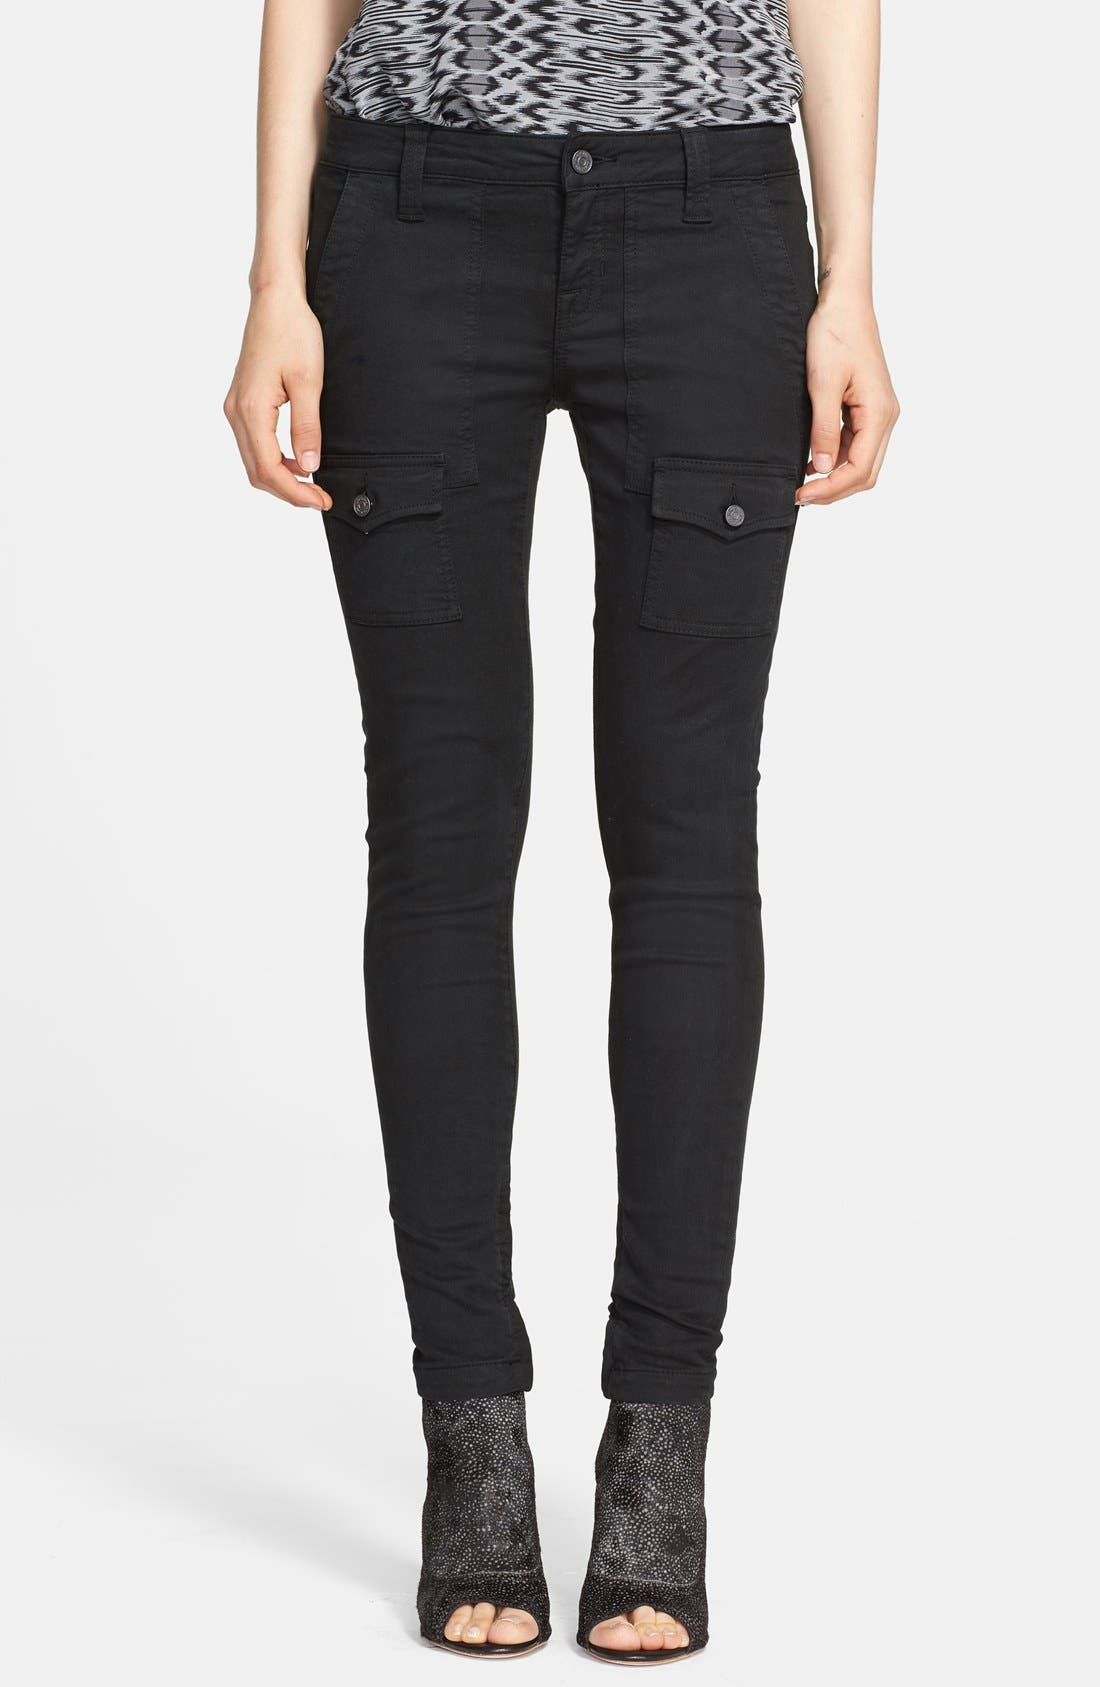 Main Image - Joie 'So Real' Cargo Stretch Skinny Jeans